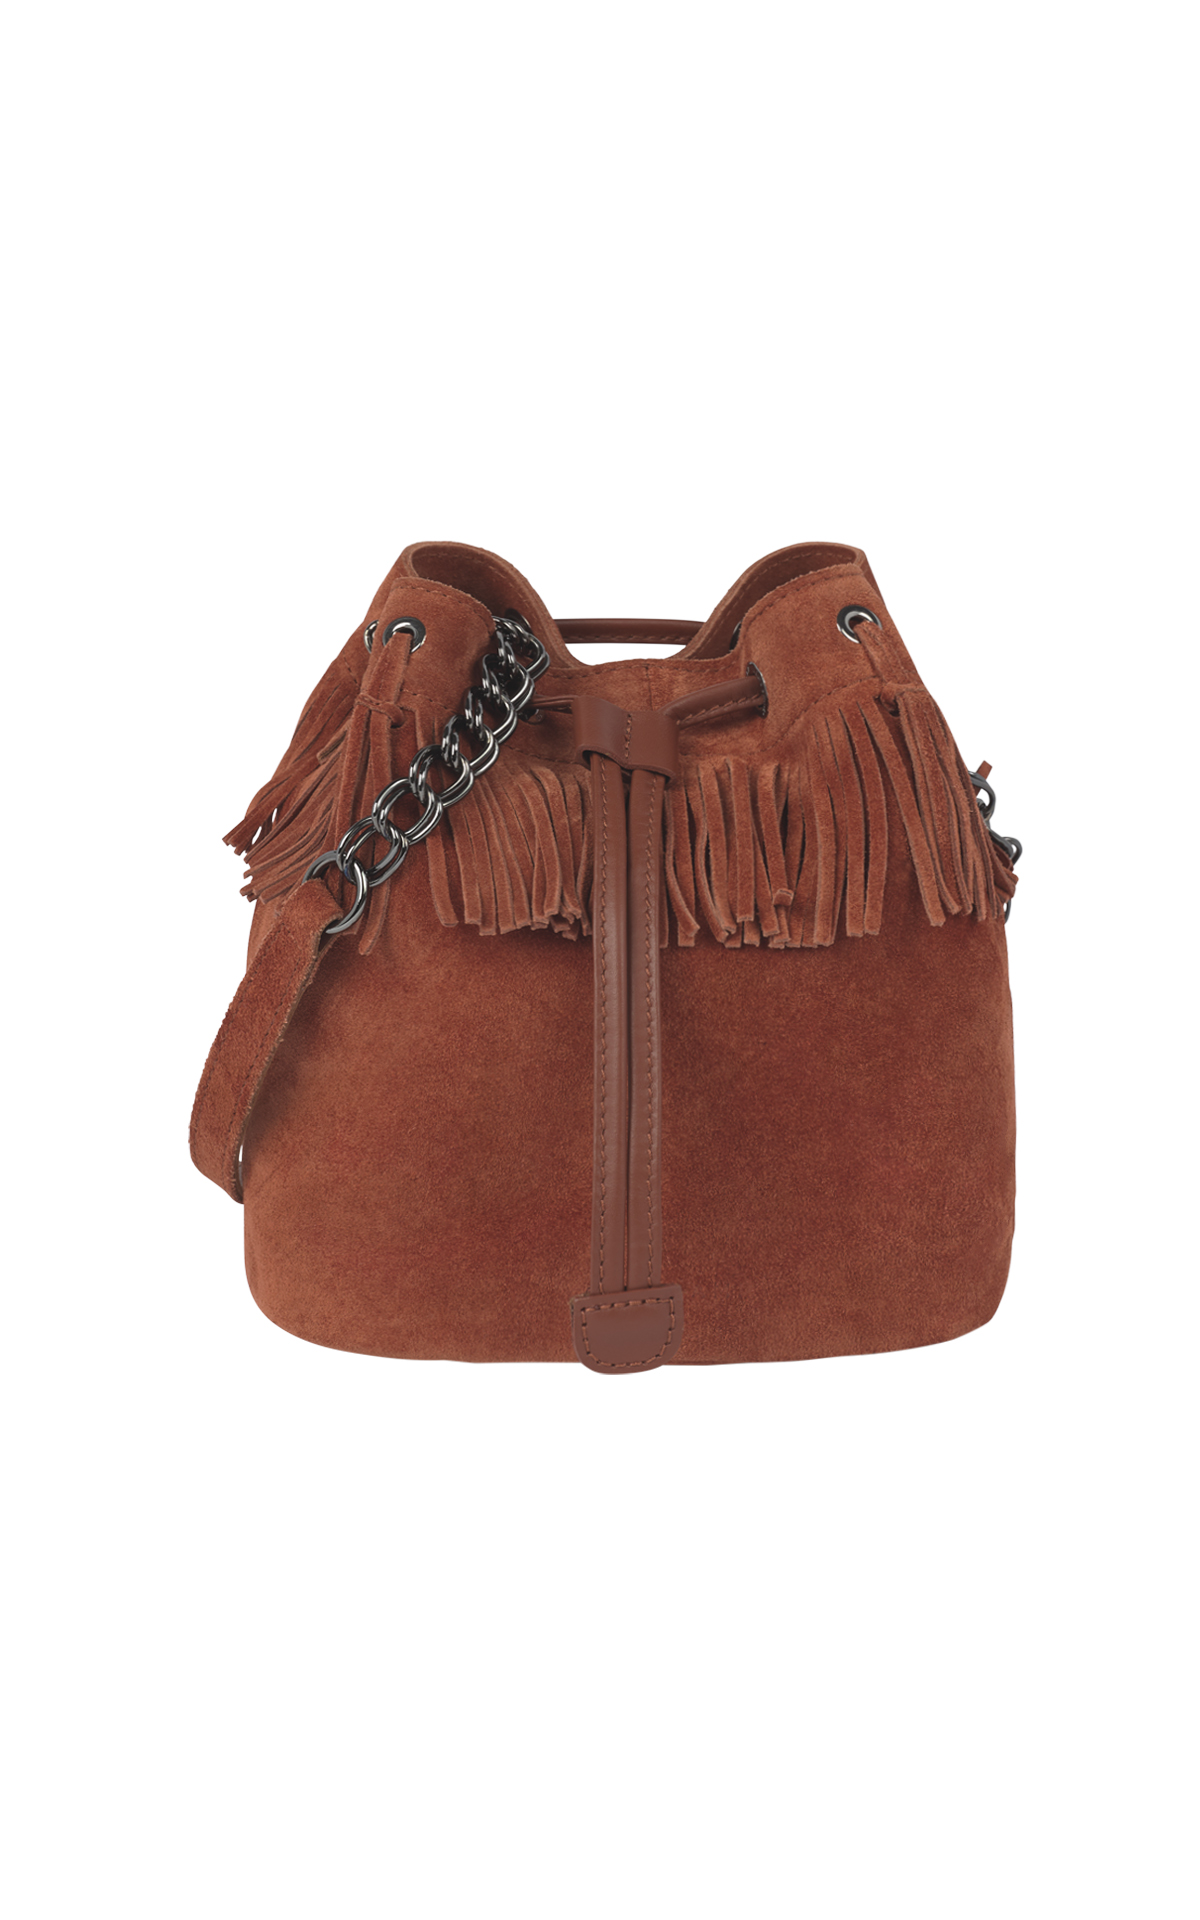 Brown fringed bucket bag Longhcamp